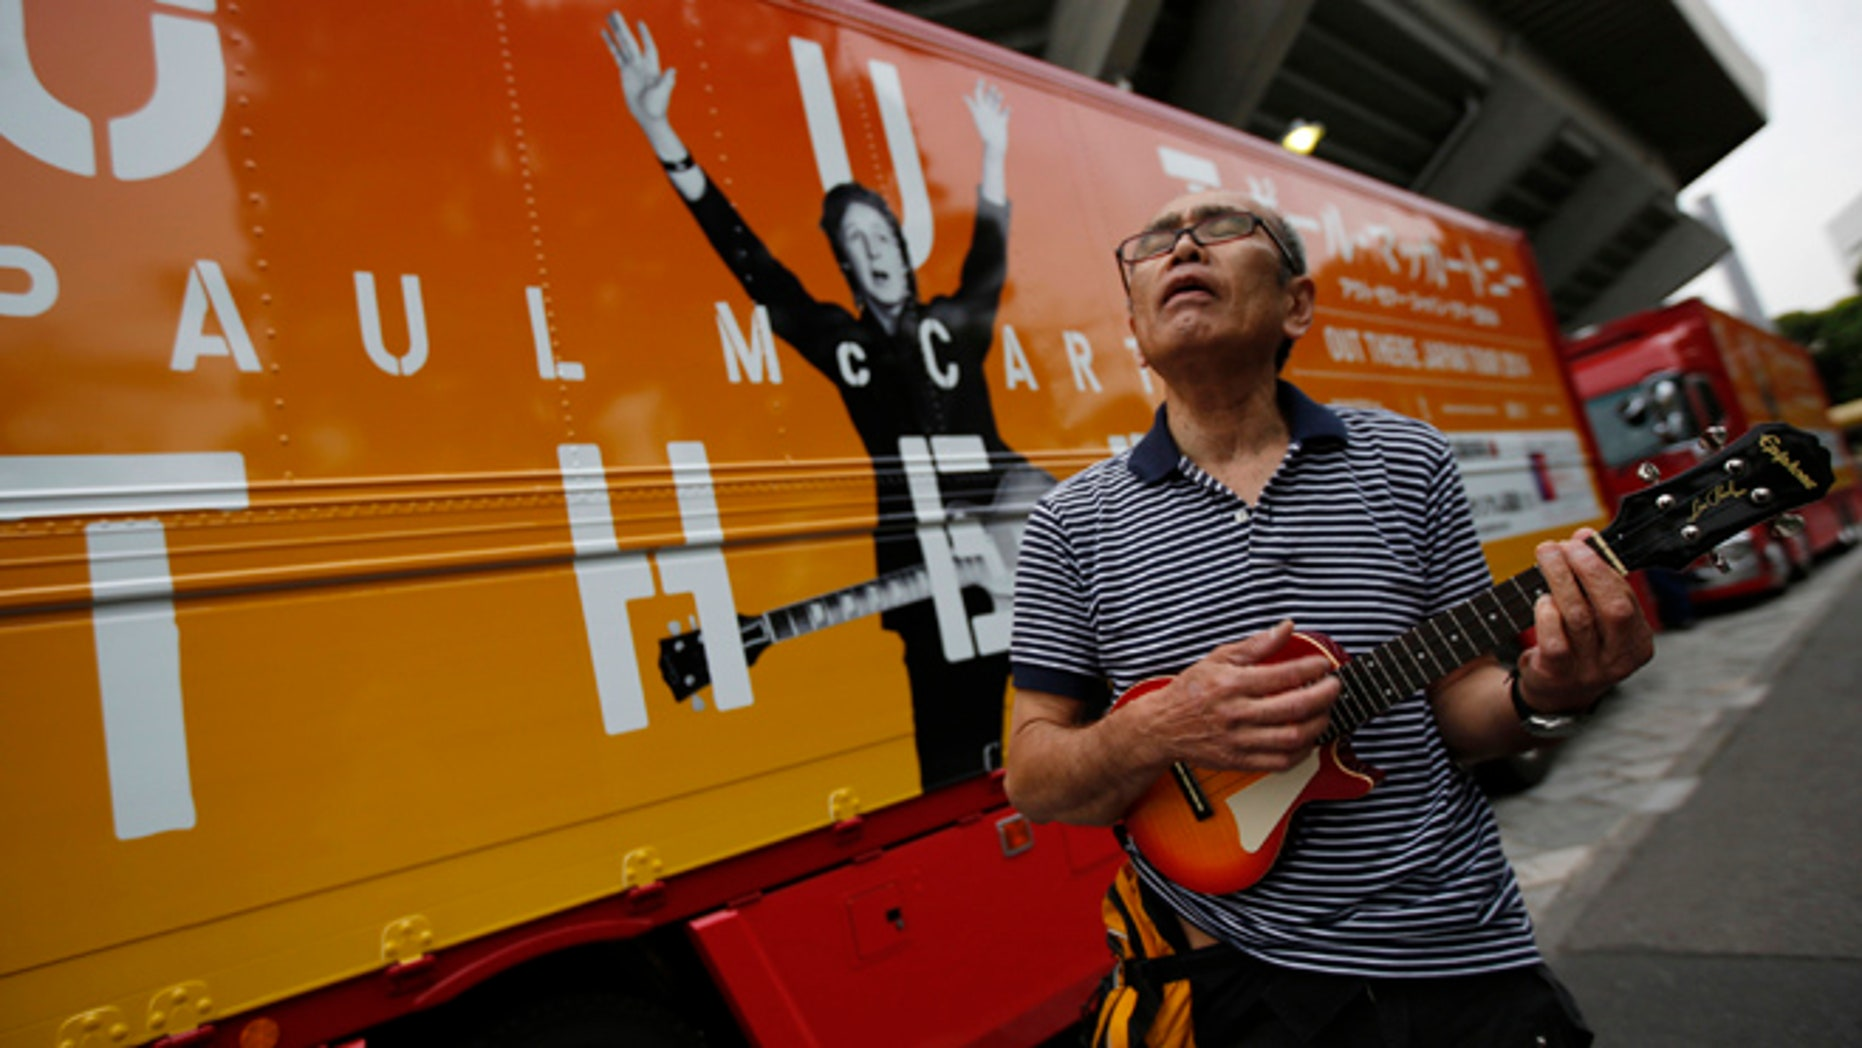 """May 20, 2014: Beatles fan Hitoshi Sekiguchi, 63, sings a Beatles song in front of a truck decorated with an advertisement for singer Paul McCartney's """"Out There"""" tour, after the cancellation of McCartney's concert at the Nippon Budokan in Tokyo."""